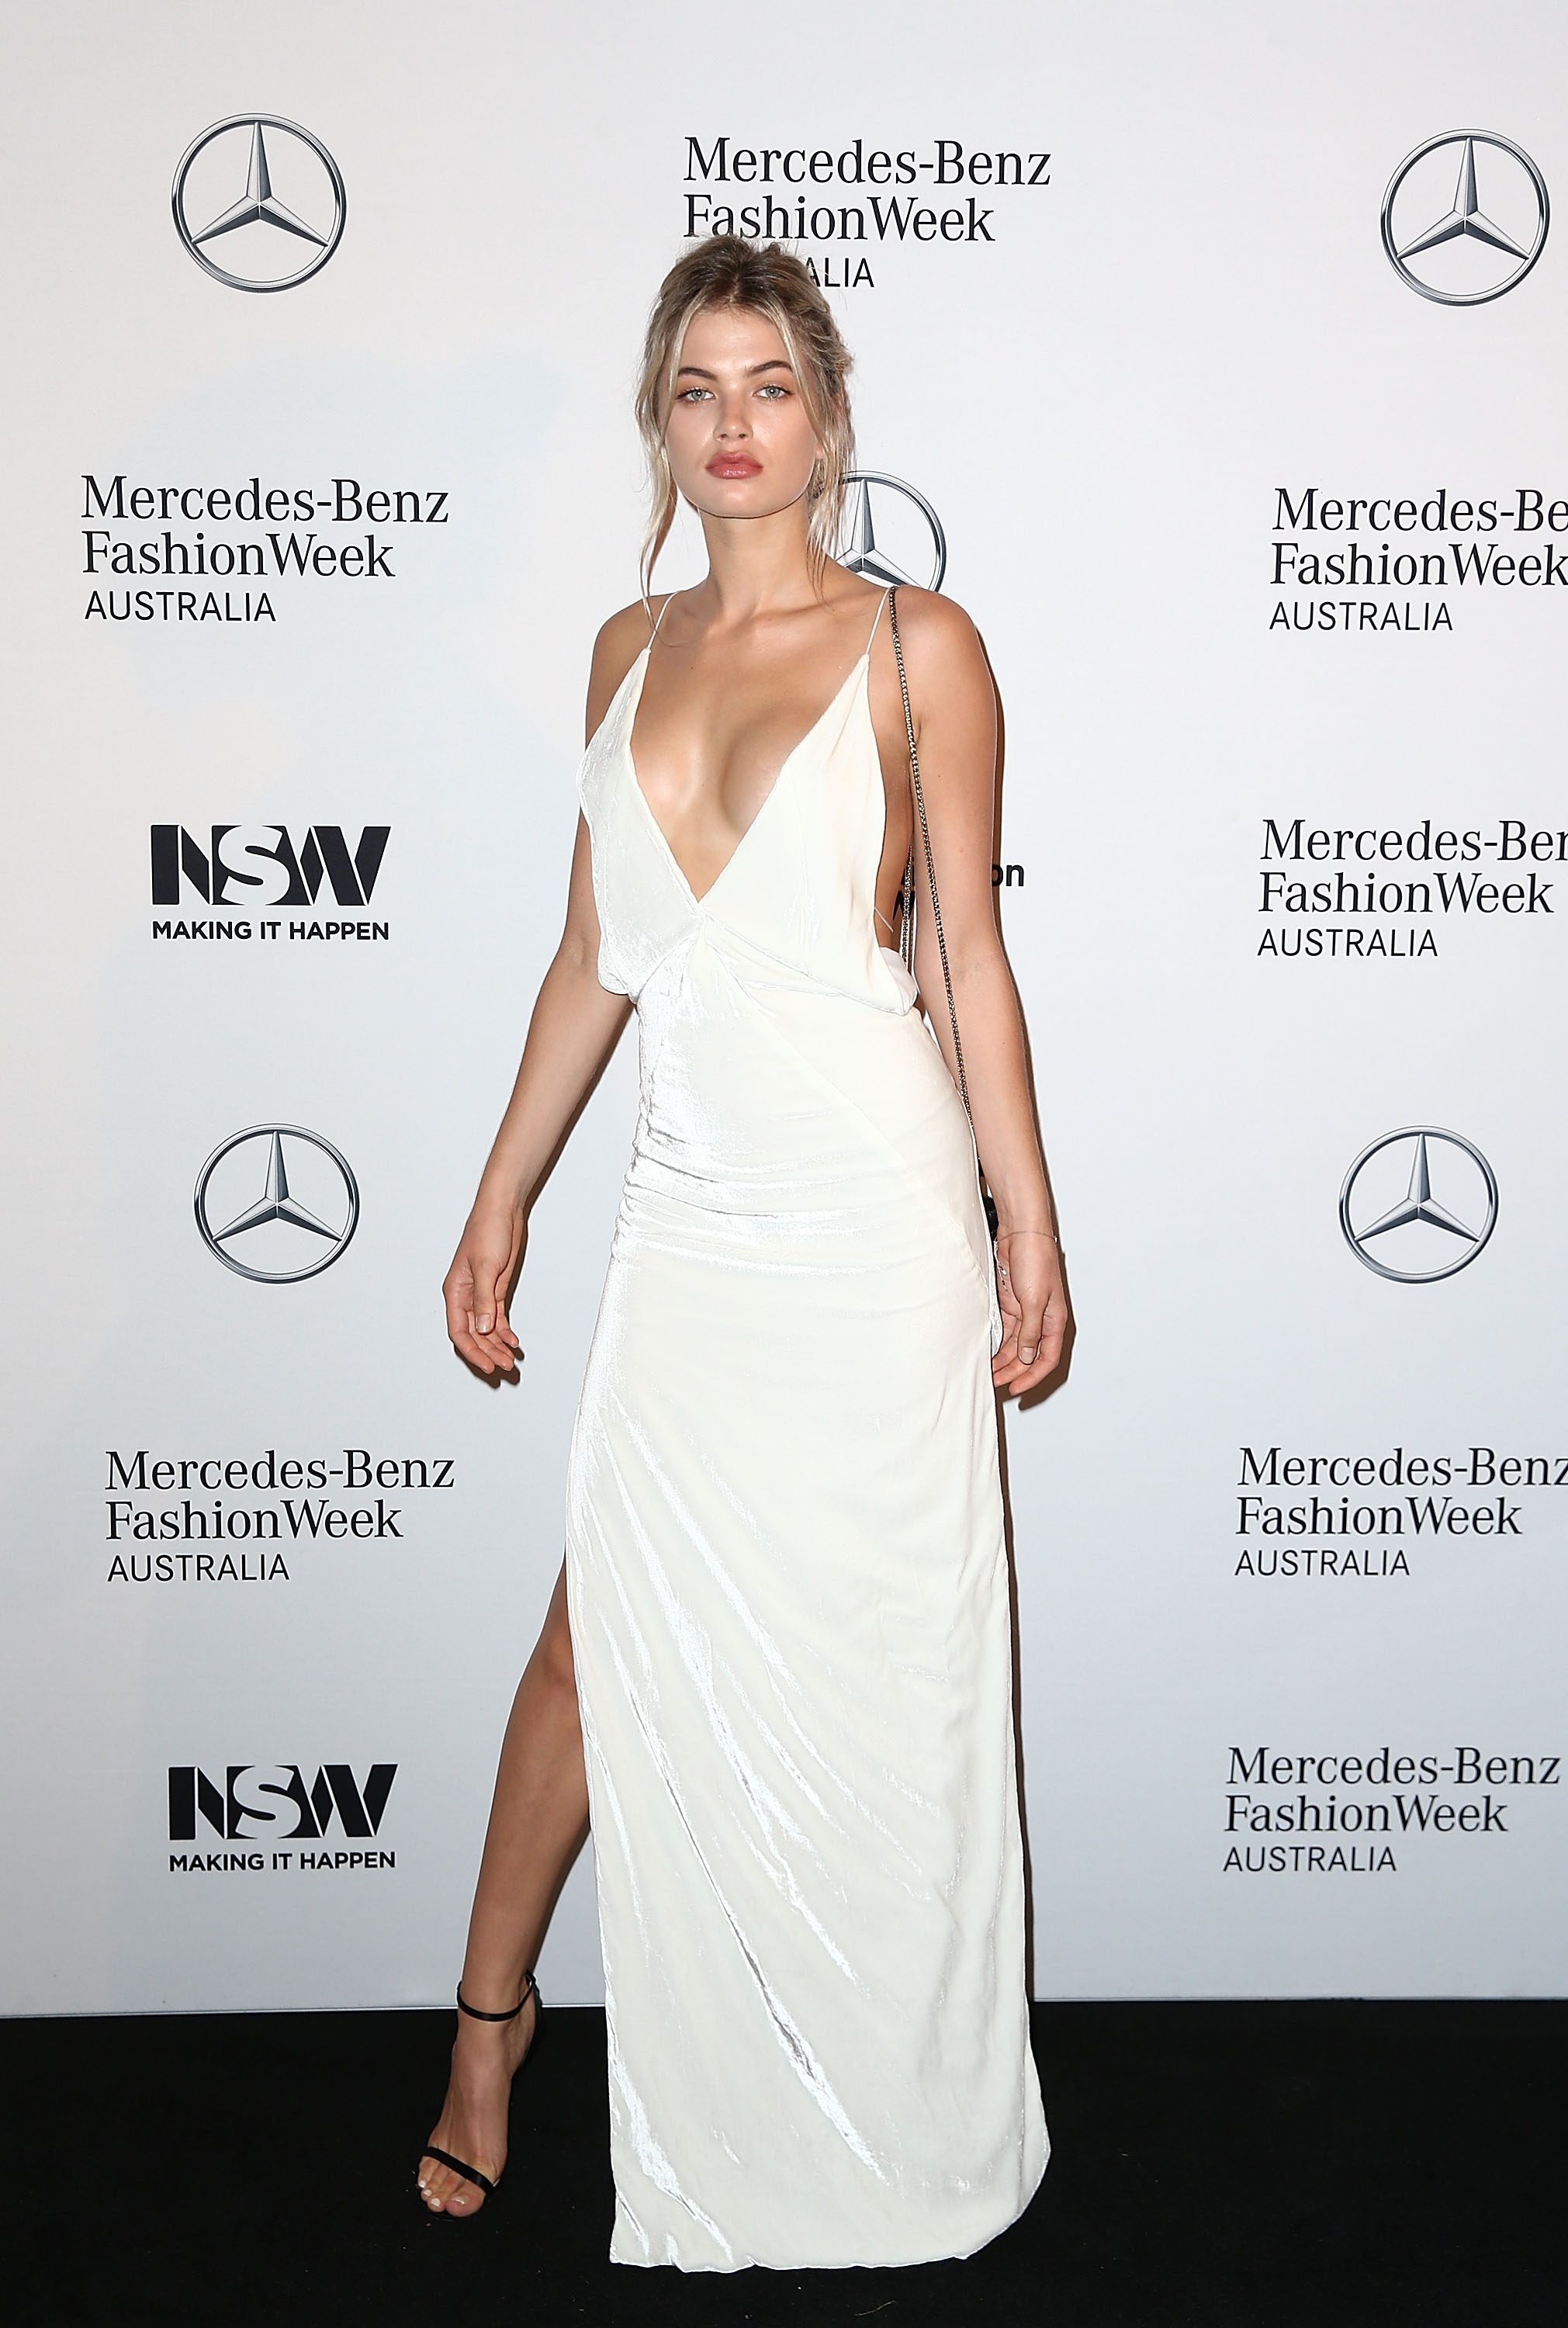 <p>Last night Sydney's leading designers and red carpet regulars descended on the Ovolo Hotel in Woolloomooloo for the progam launch of Mercedes Benz Fashion Week Australia 2017.</p> <p>Joining familiar names such as Alice McCall, Akira, Bianca Spender, Dion Lee, Kit Willow with KitX, Romance Was Born, Ginger & Smart and Bec & Bridge on the schedule were an onslaught of emerging brands such as Justin Cassin, Vale Denim and Yousef Akbar.</p> <p>Following last year's introduction of international brands, with appearances from Cynthia Rowley and Oscar de la Renta, MBFWA will welcome US male model Garret Neff's budding mens' swimwear label Katama.</p> <p>Mercedes Benz ambassador, New York-based Dion Lee, will open the event on May 14.</p> <p>This will be MBFWA's second year presenting resort collections in a bid to gain relevance in an industry where the show structure is under siege.</p> <p> </p> Model Megan Blake Irwin.